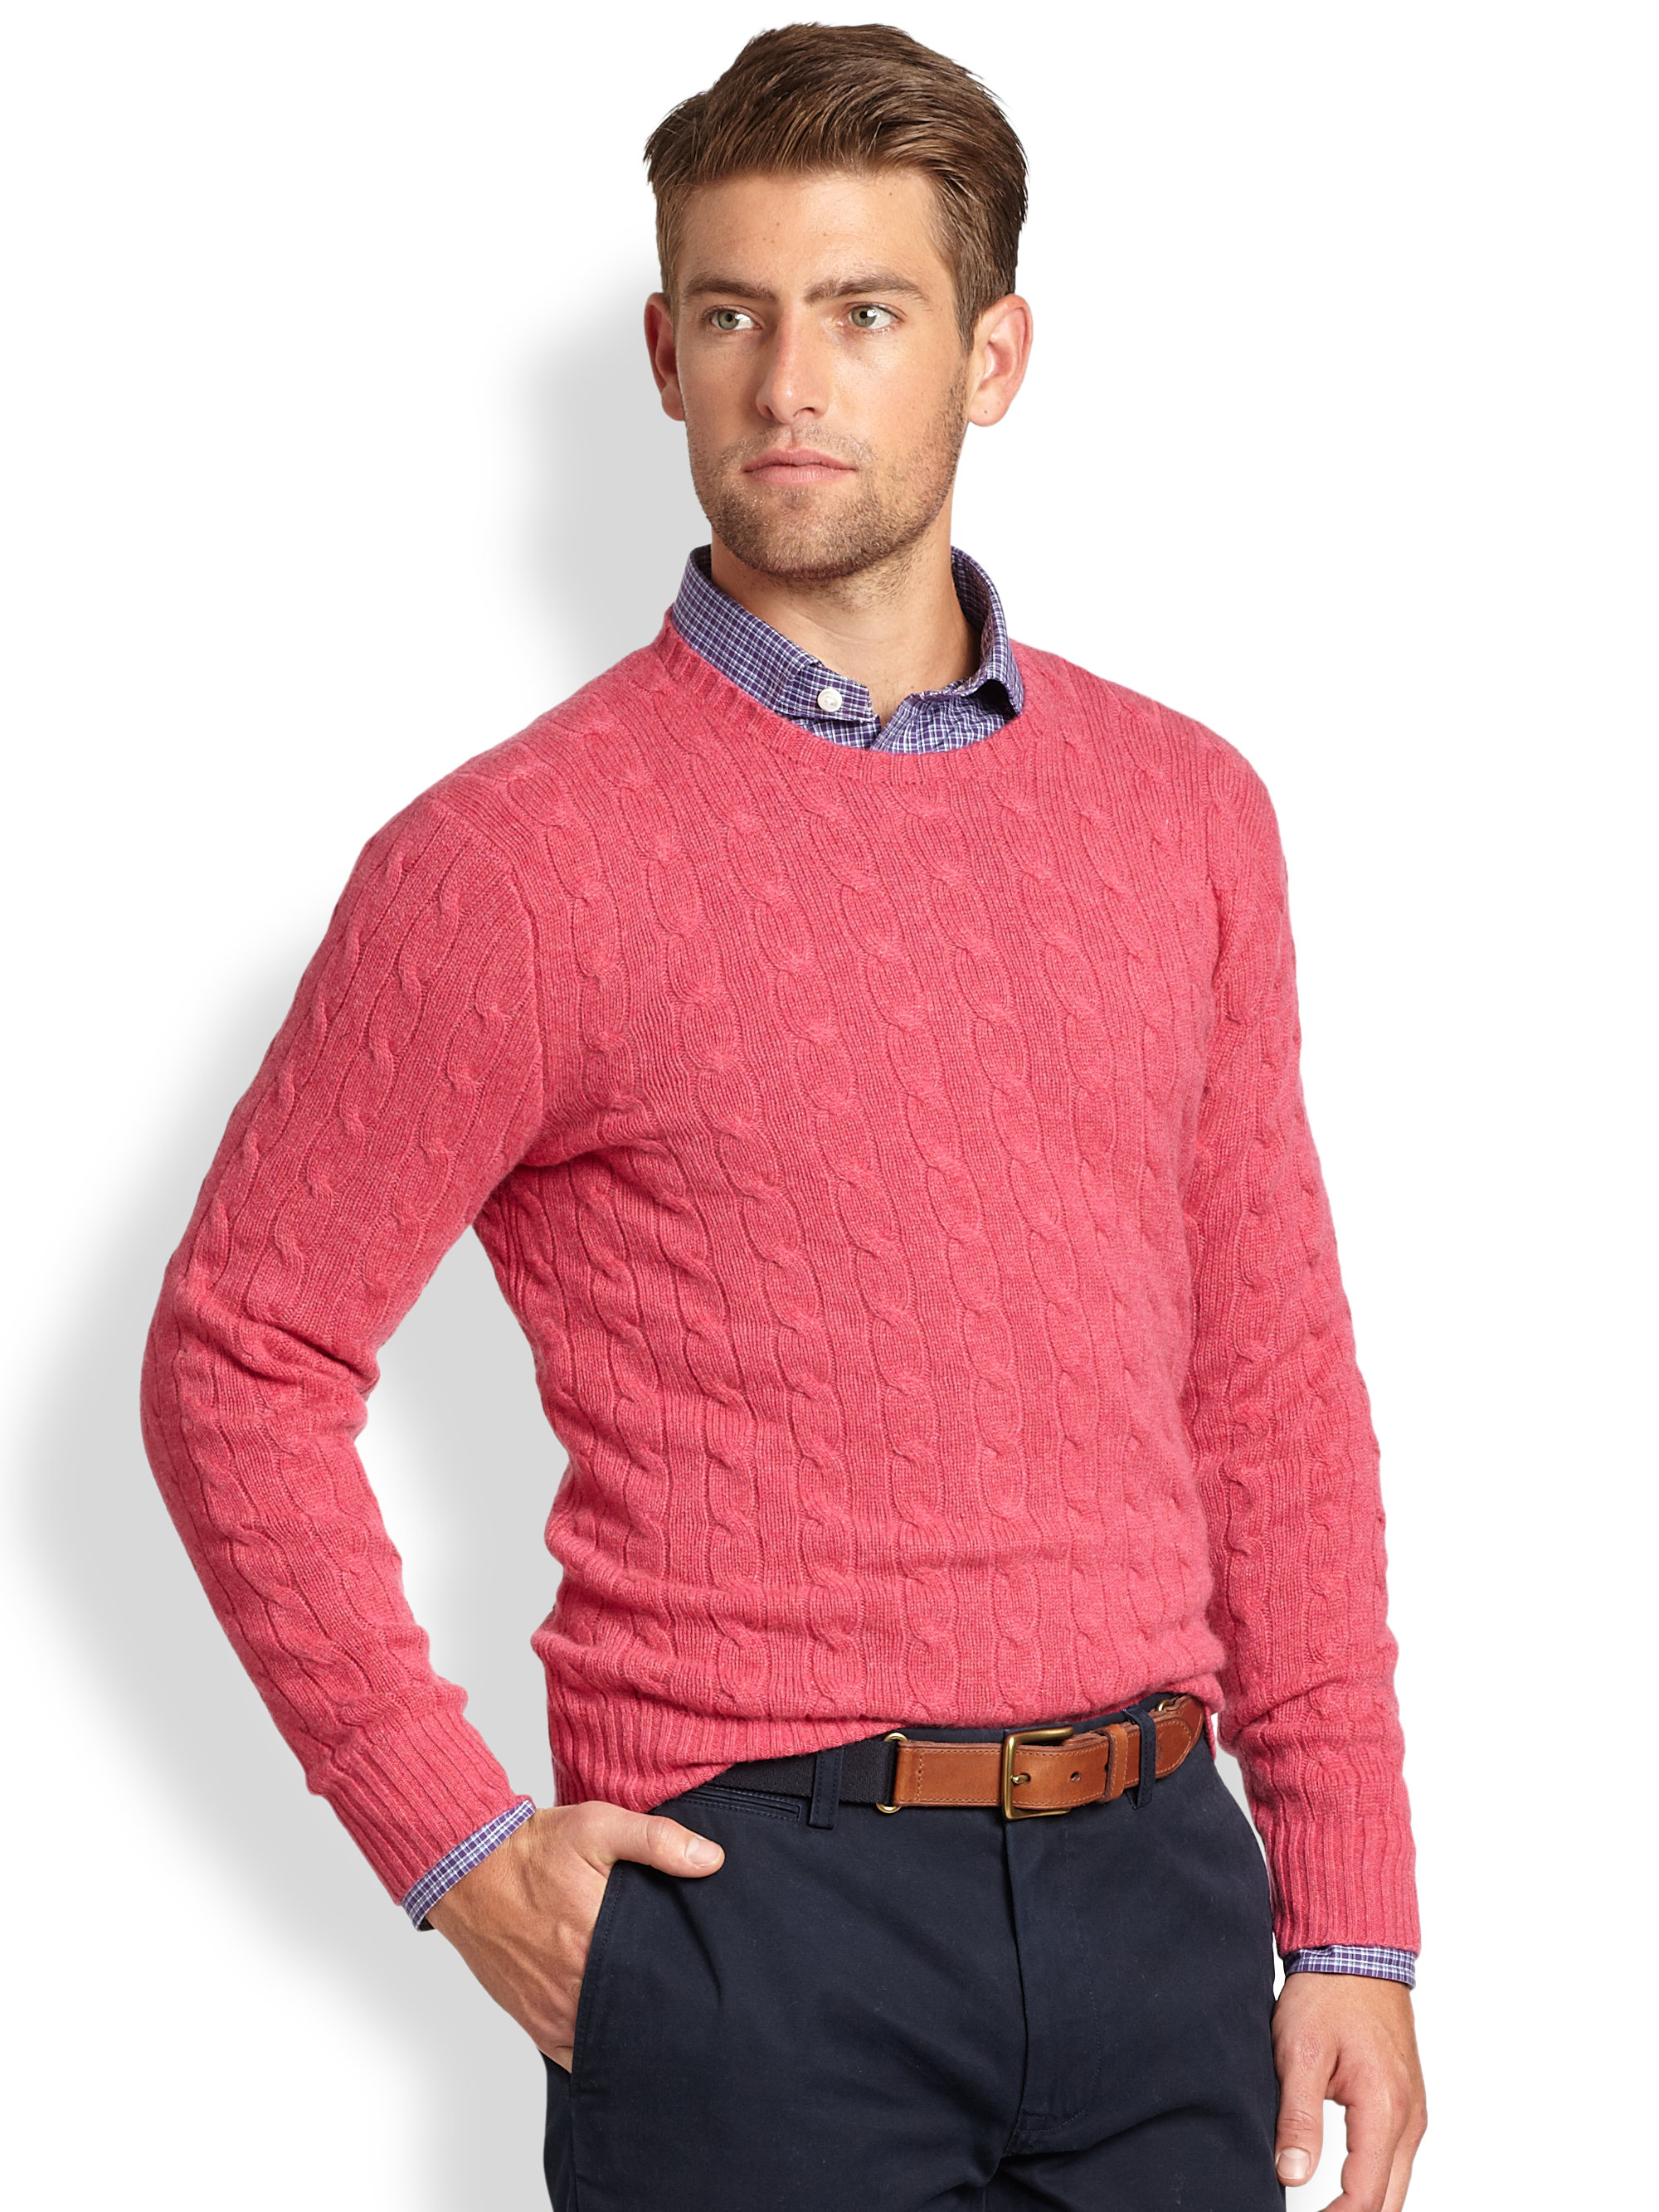 Cable Knit Crewneck Sweater - Cashmere Sweater England